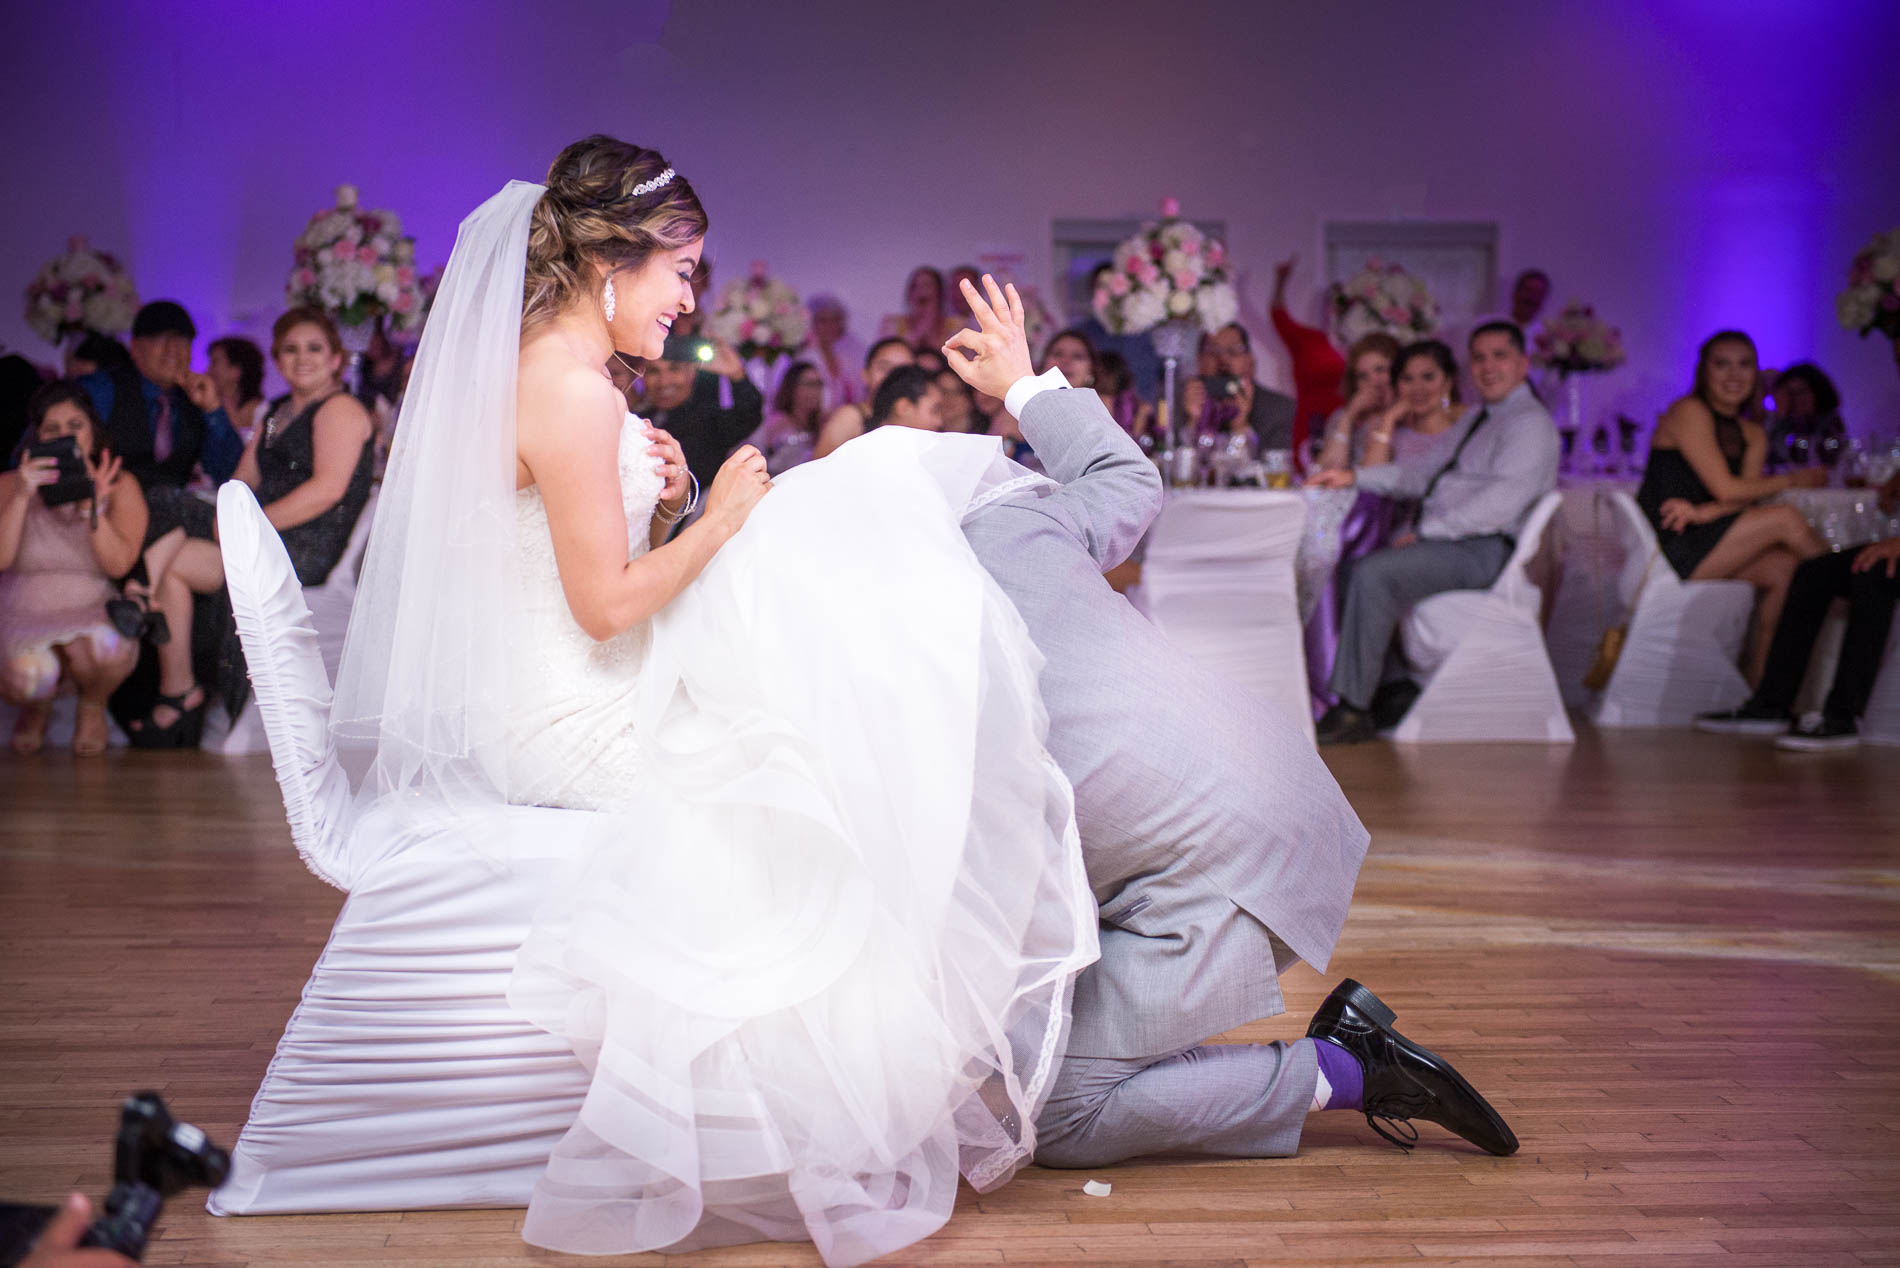 19 Of The Best Wedding Garter Removal Songs For Your Reception